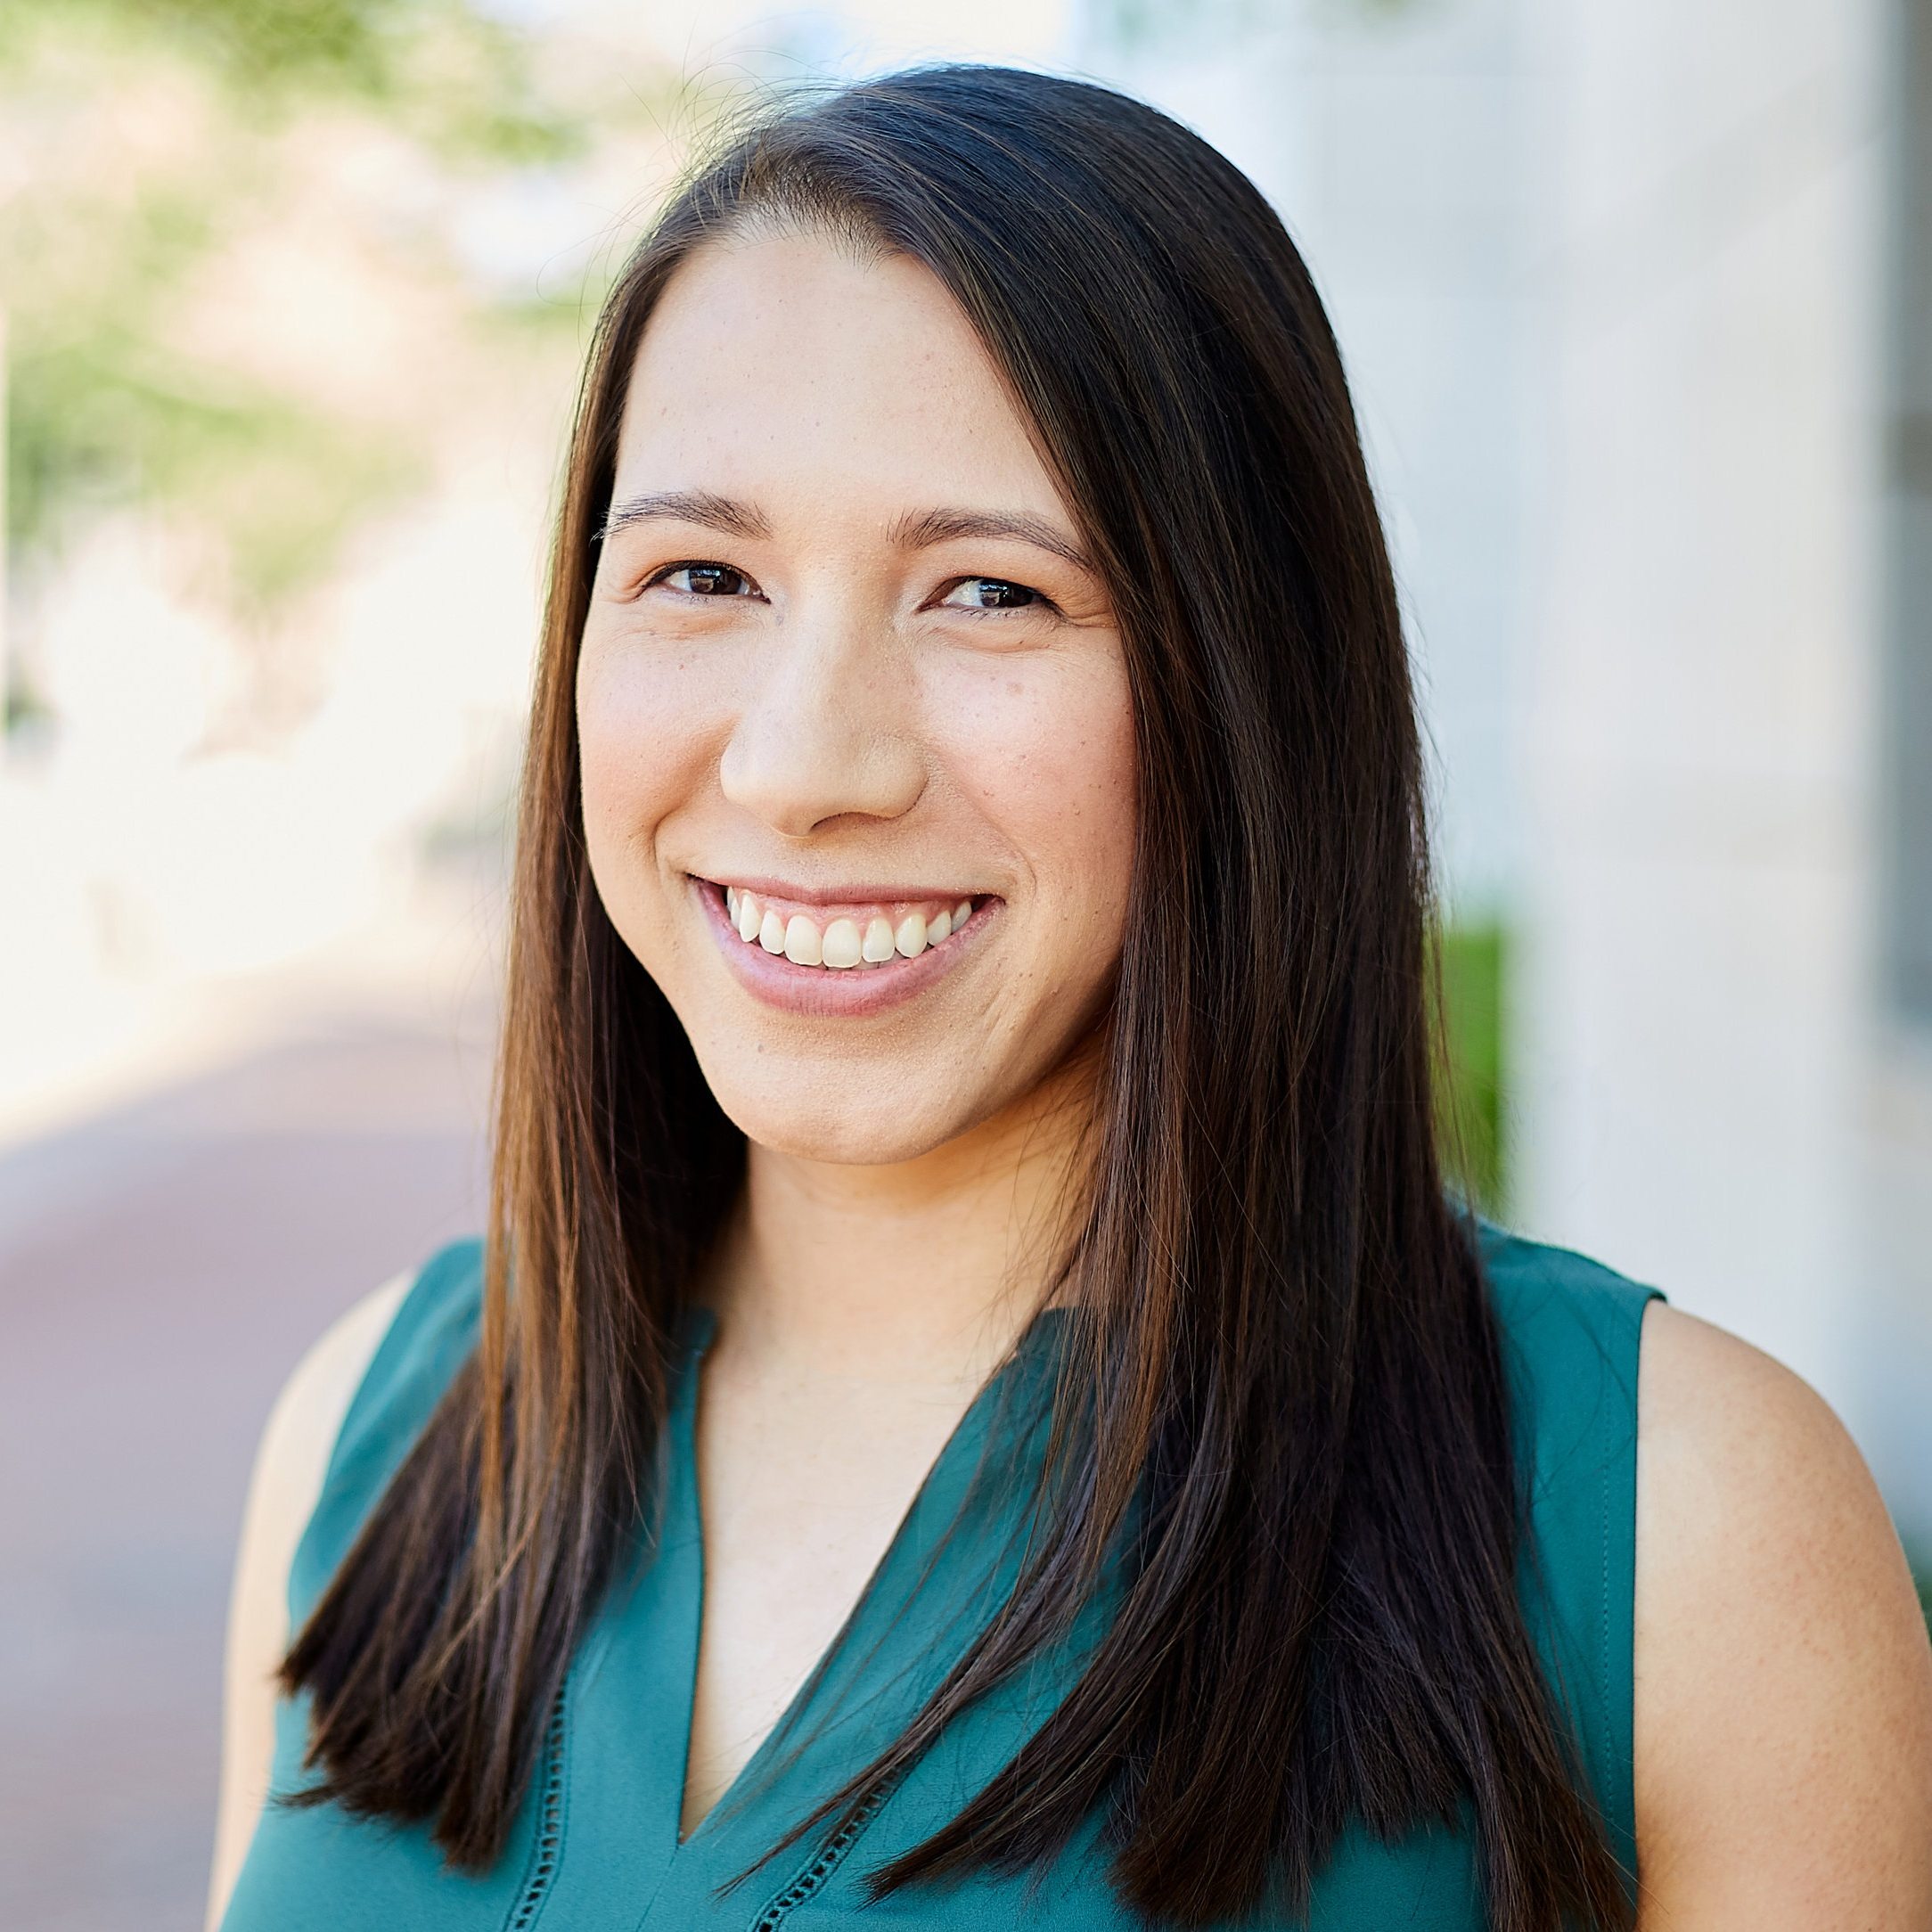 About - Hi, I'm Dr. Courtney.I'm a Licensed Psychologist (PSY 31253) located in SoCal and I provide online video counseling to clients located throughout the state of California.I grew up a in a blended family with parents and siblings from diverse backgrounds and various world-views and value systems. From a young age, I have been fascinated by human relationships.Through the process of overcoming challenges in my own family and intimate relationships and learning to build a thriving romantic relationship, I developed a passion for helping others do the same.